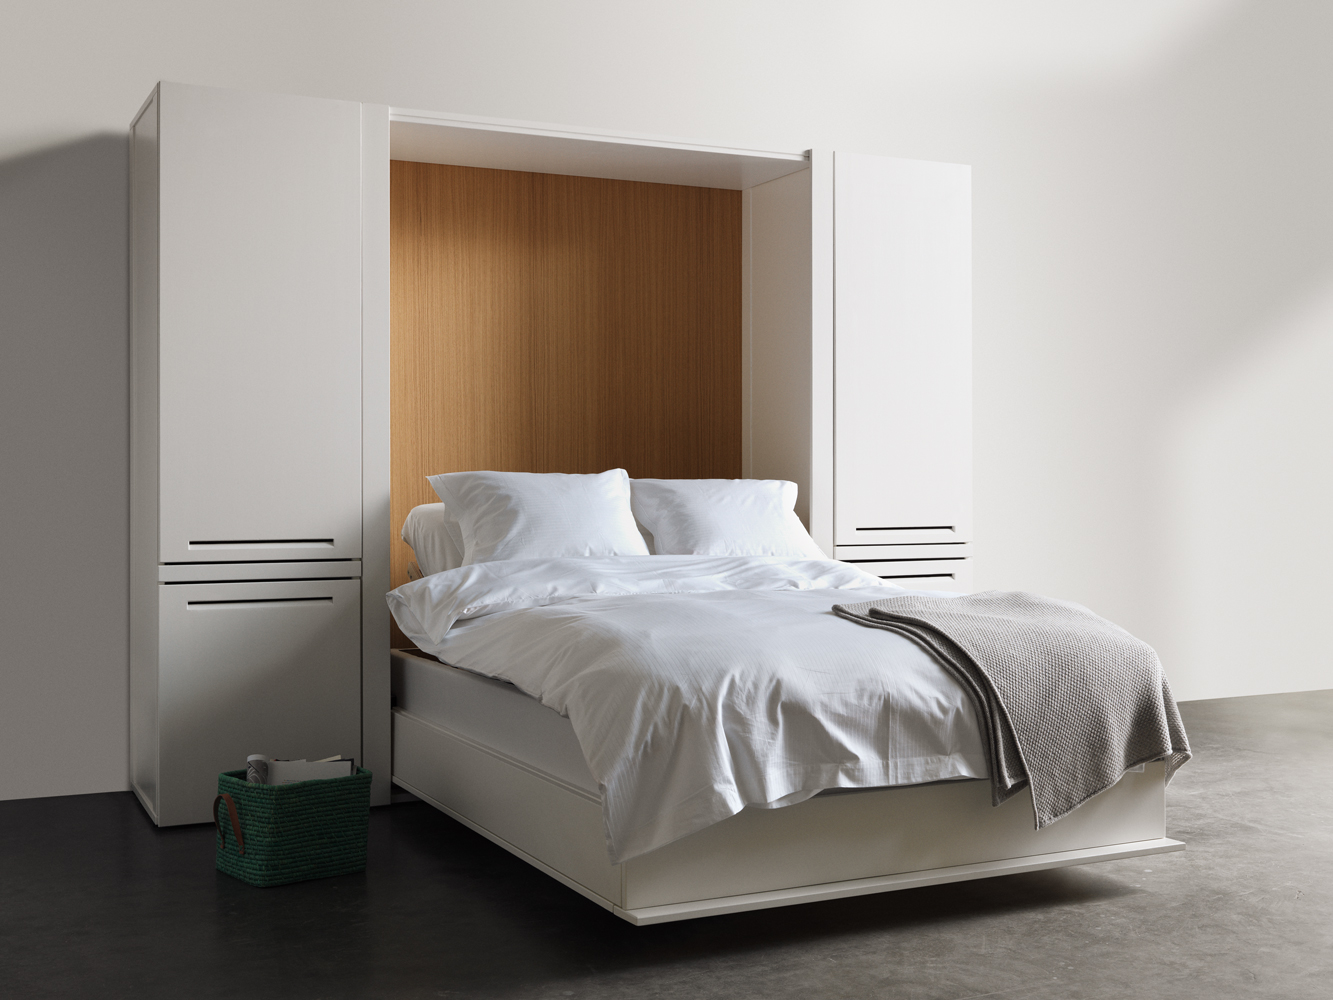 multifunctional bed cabinet asante arkitektur design ab. Black Bedroom Furniture Sets. Home Design Ideas